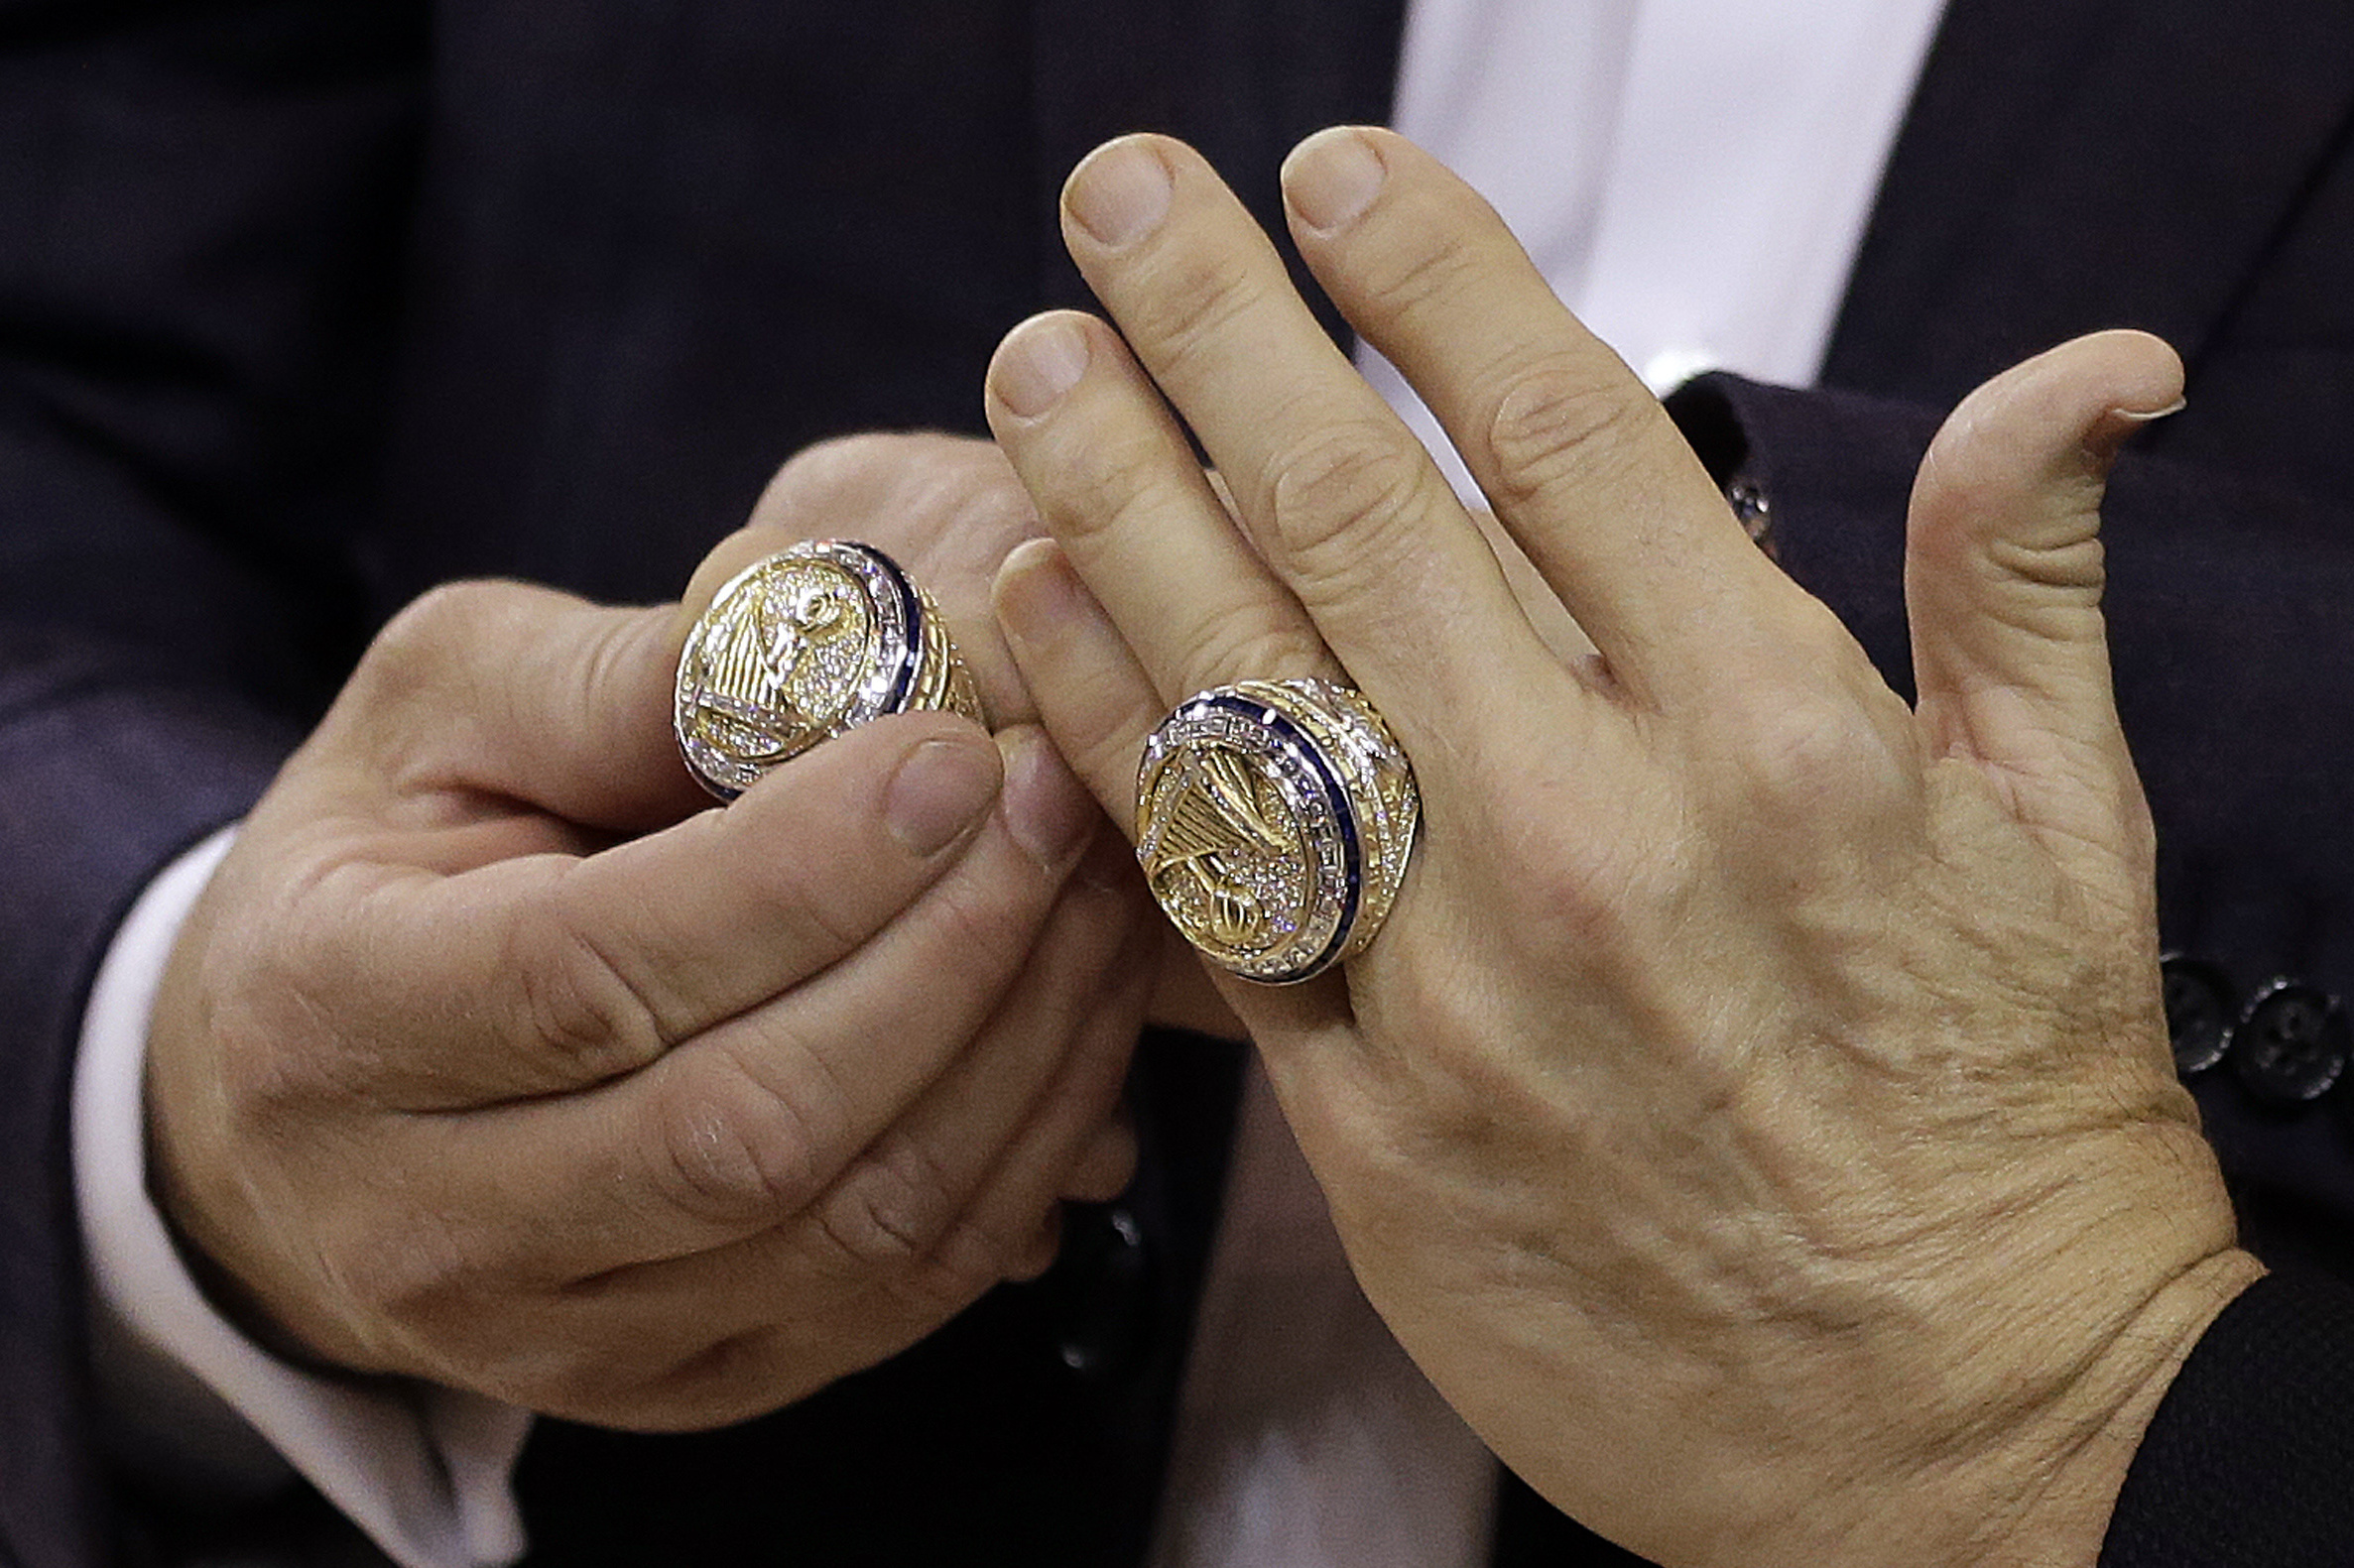 Fake Nba Championship Rings Found In Lax Customs Bust Could Be Worth 560k Bleacher Report Latest News Videos And Highlights